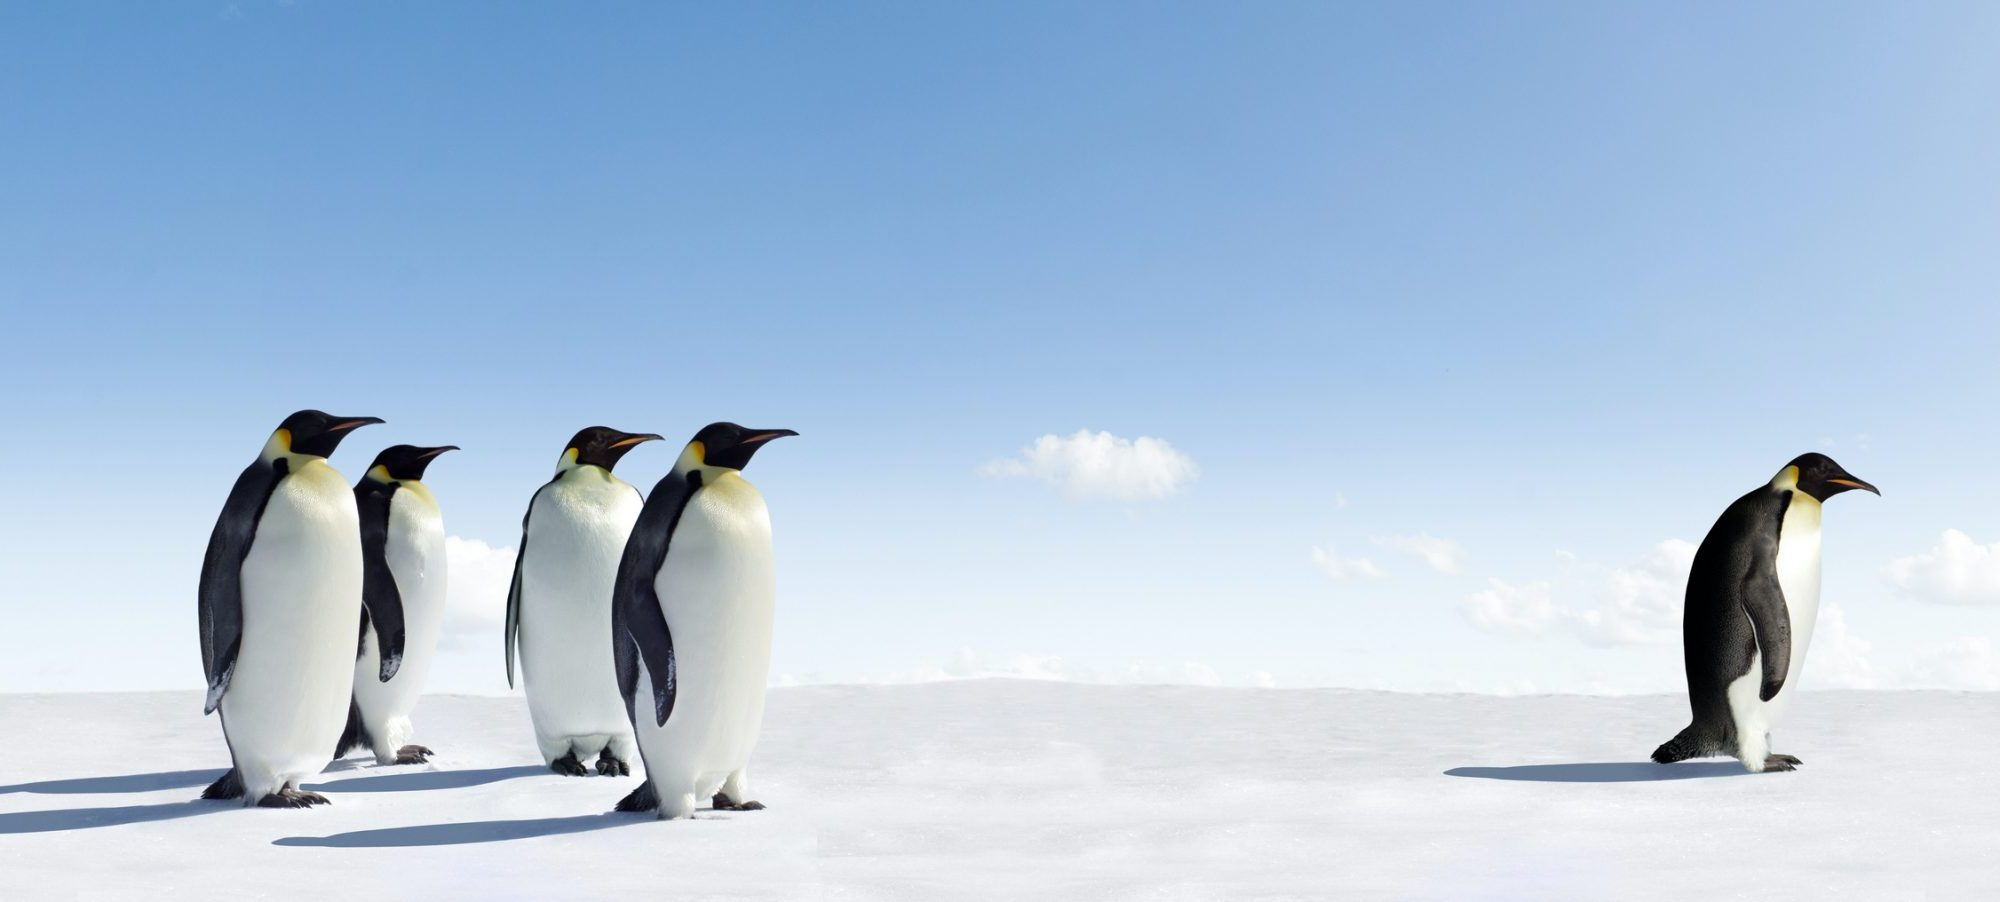 Here is a single penguin standing away from a group of penguins.